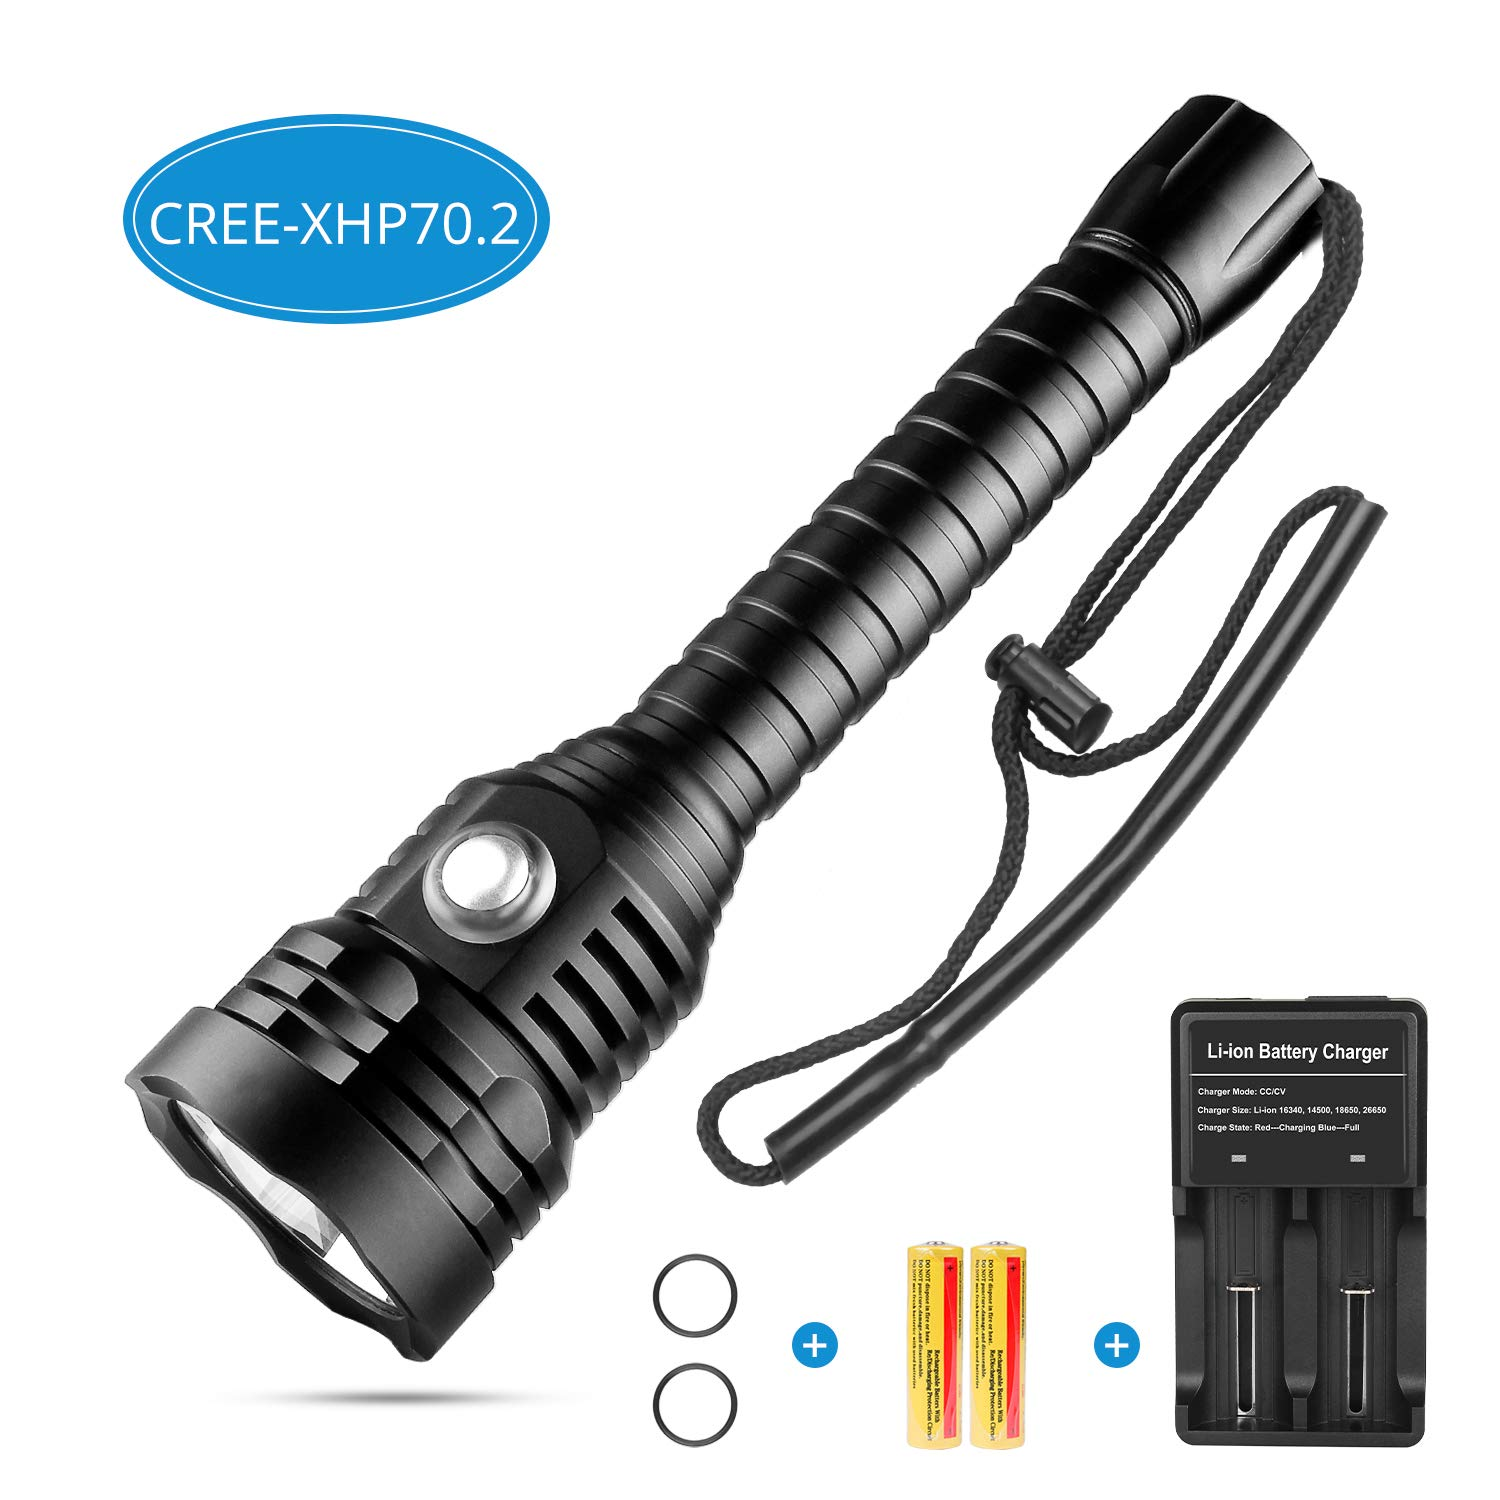 Sondiko CREE-XHP70.2 Diving Flashlight, 5000 Lumen Super Bright 100M Underwater Scuba Diving Light with Rechargeable Batteries and Charger